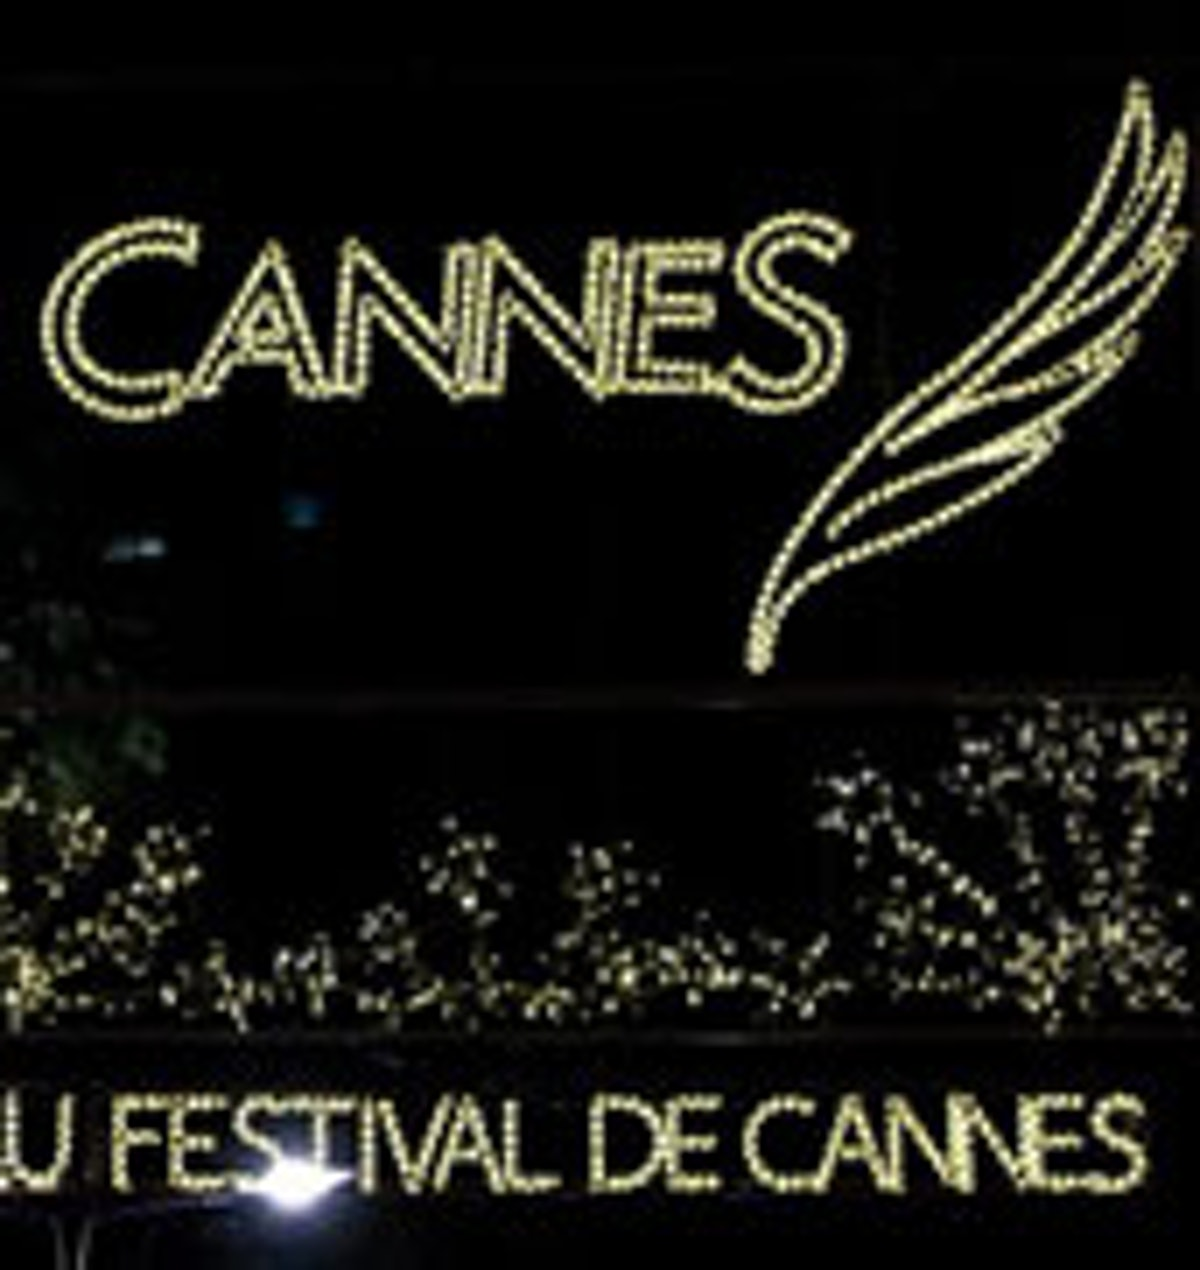 cess_cannes1_search1.jpg